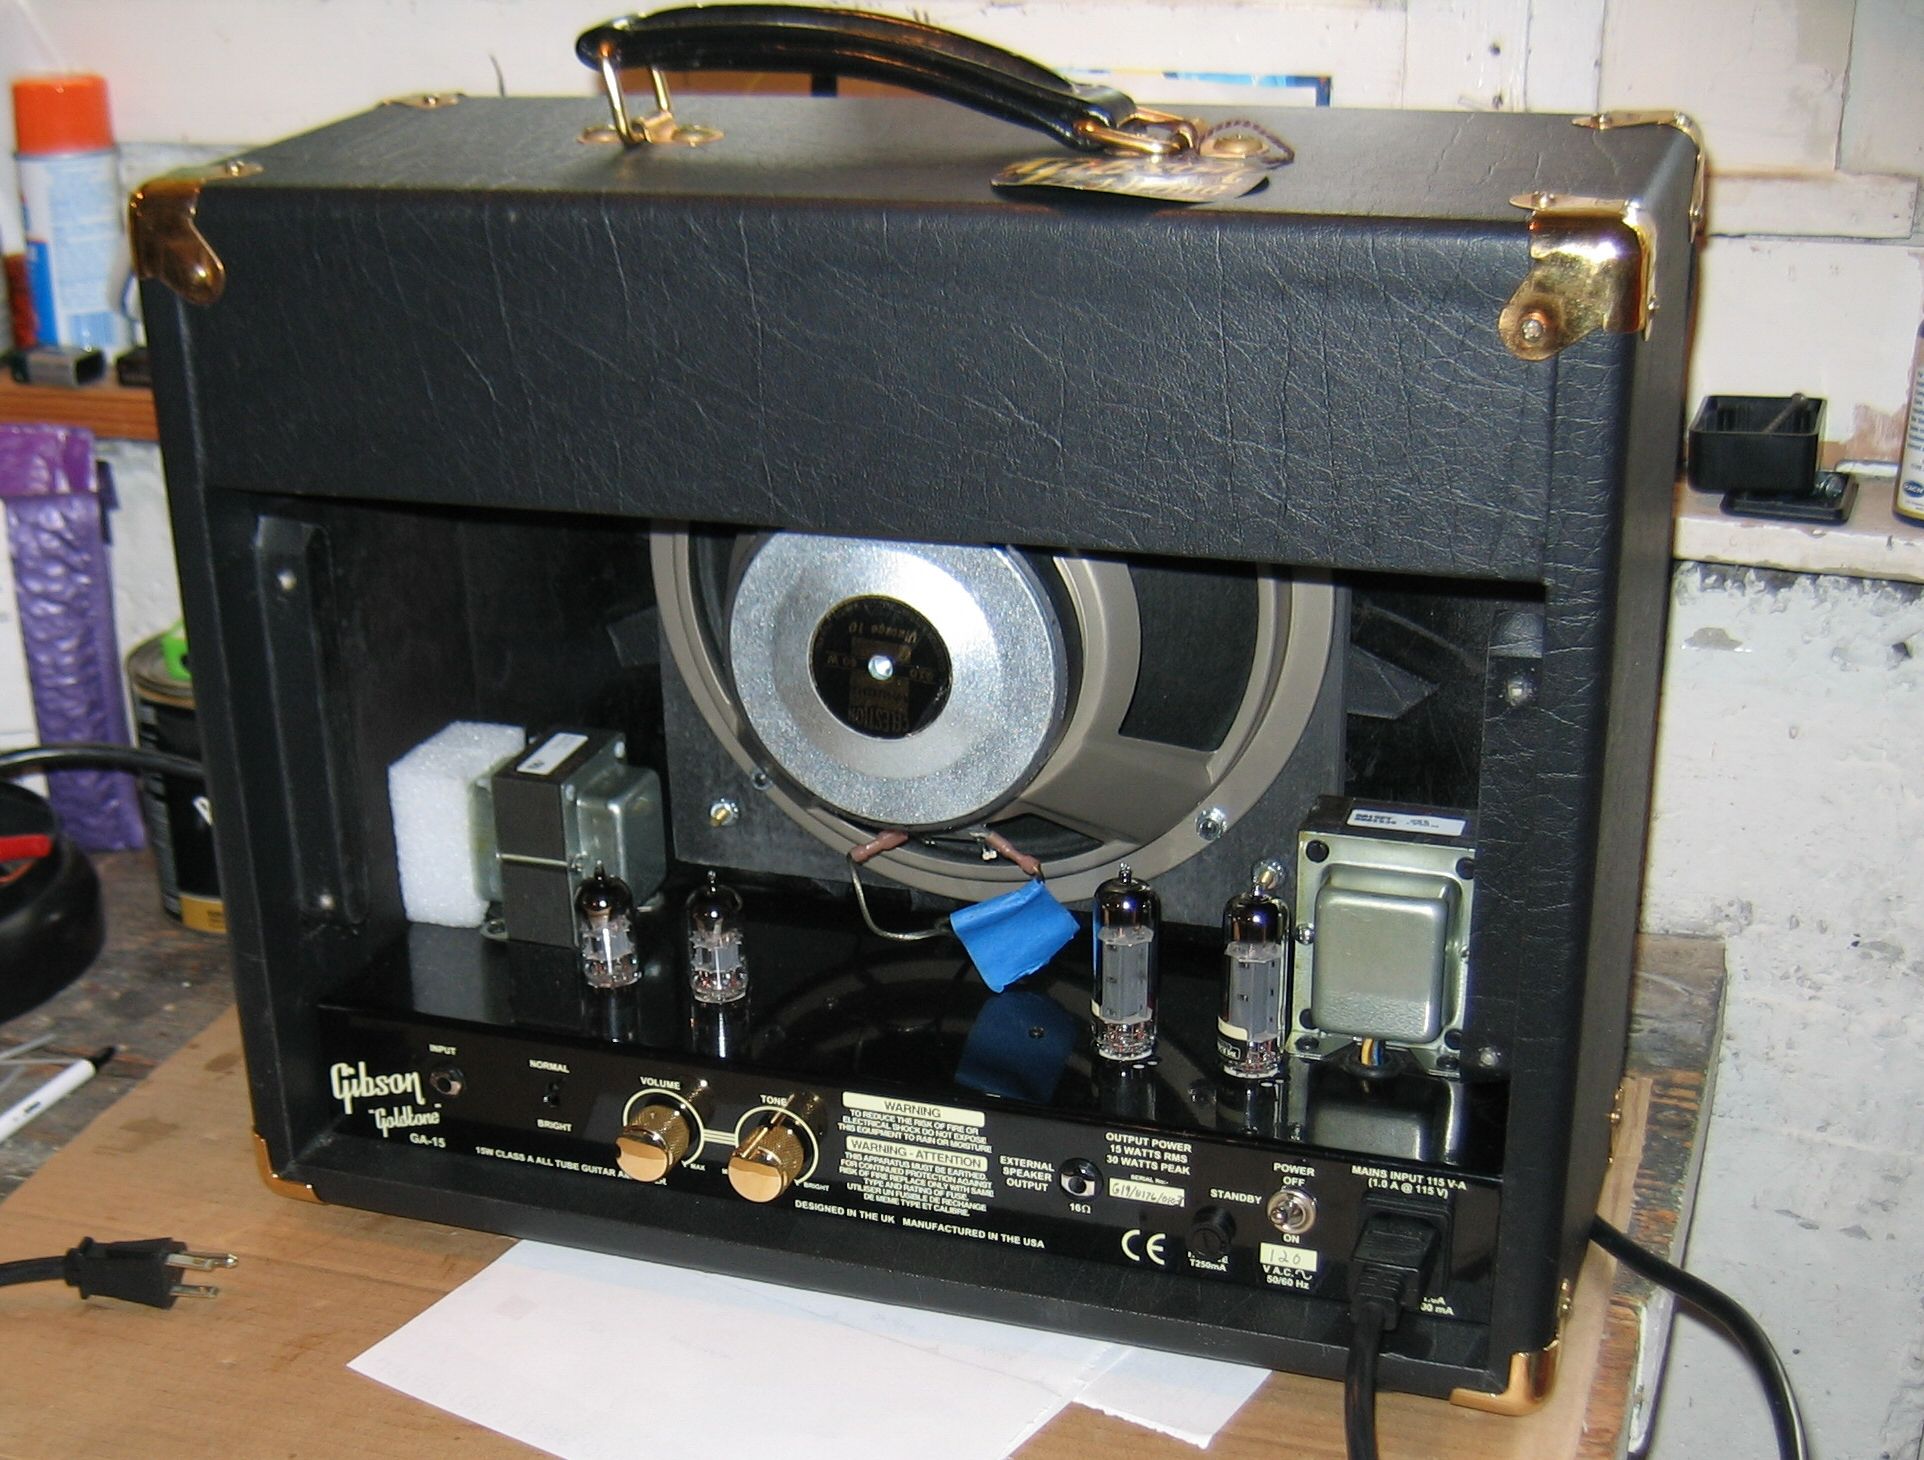 I Just Worked On A Sunnyside Amps Gibson Guitar Board Updating The Electronics With Pcb Do Clip Img 2501 2500